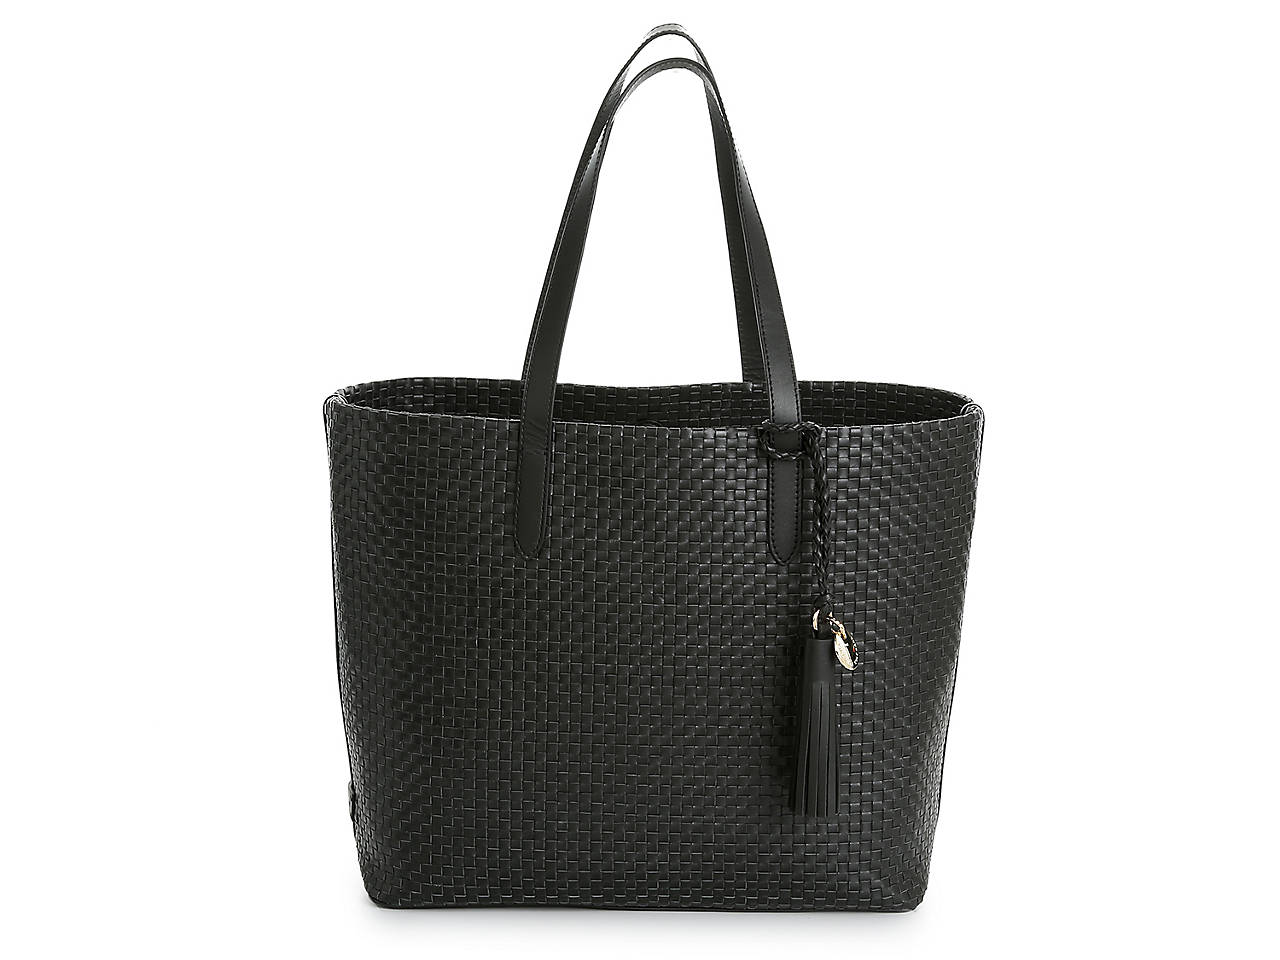 Payson Woven Leather Tote